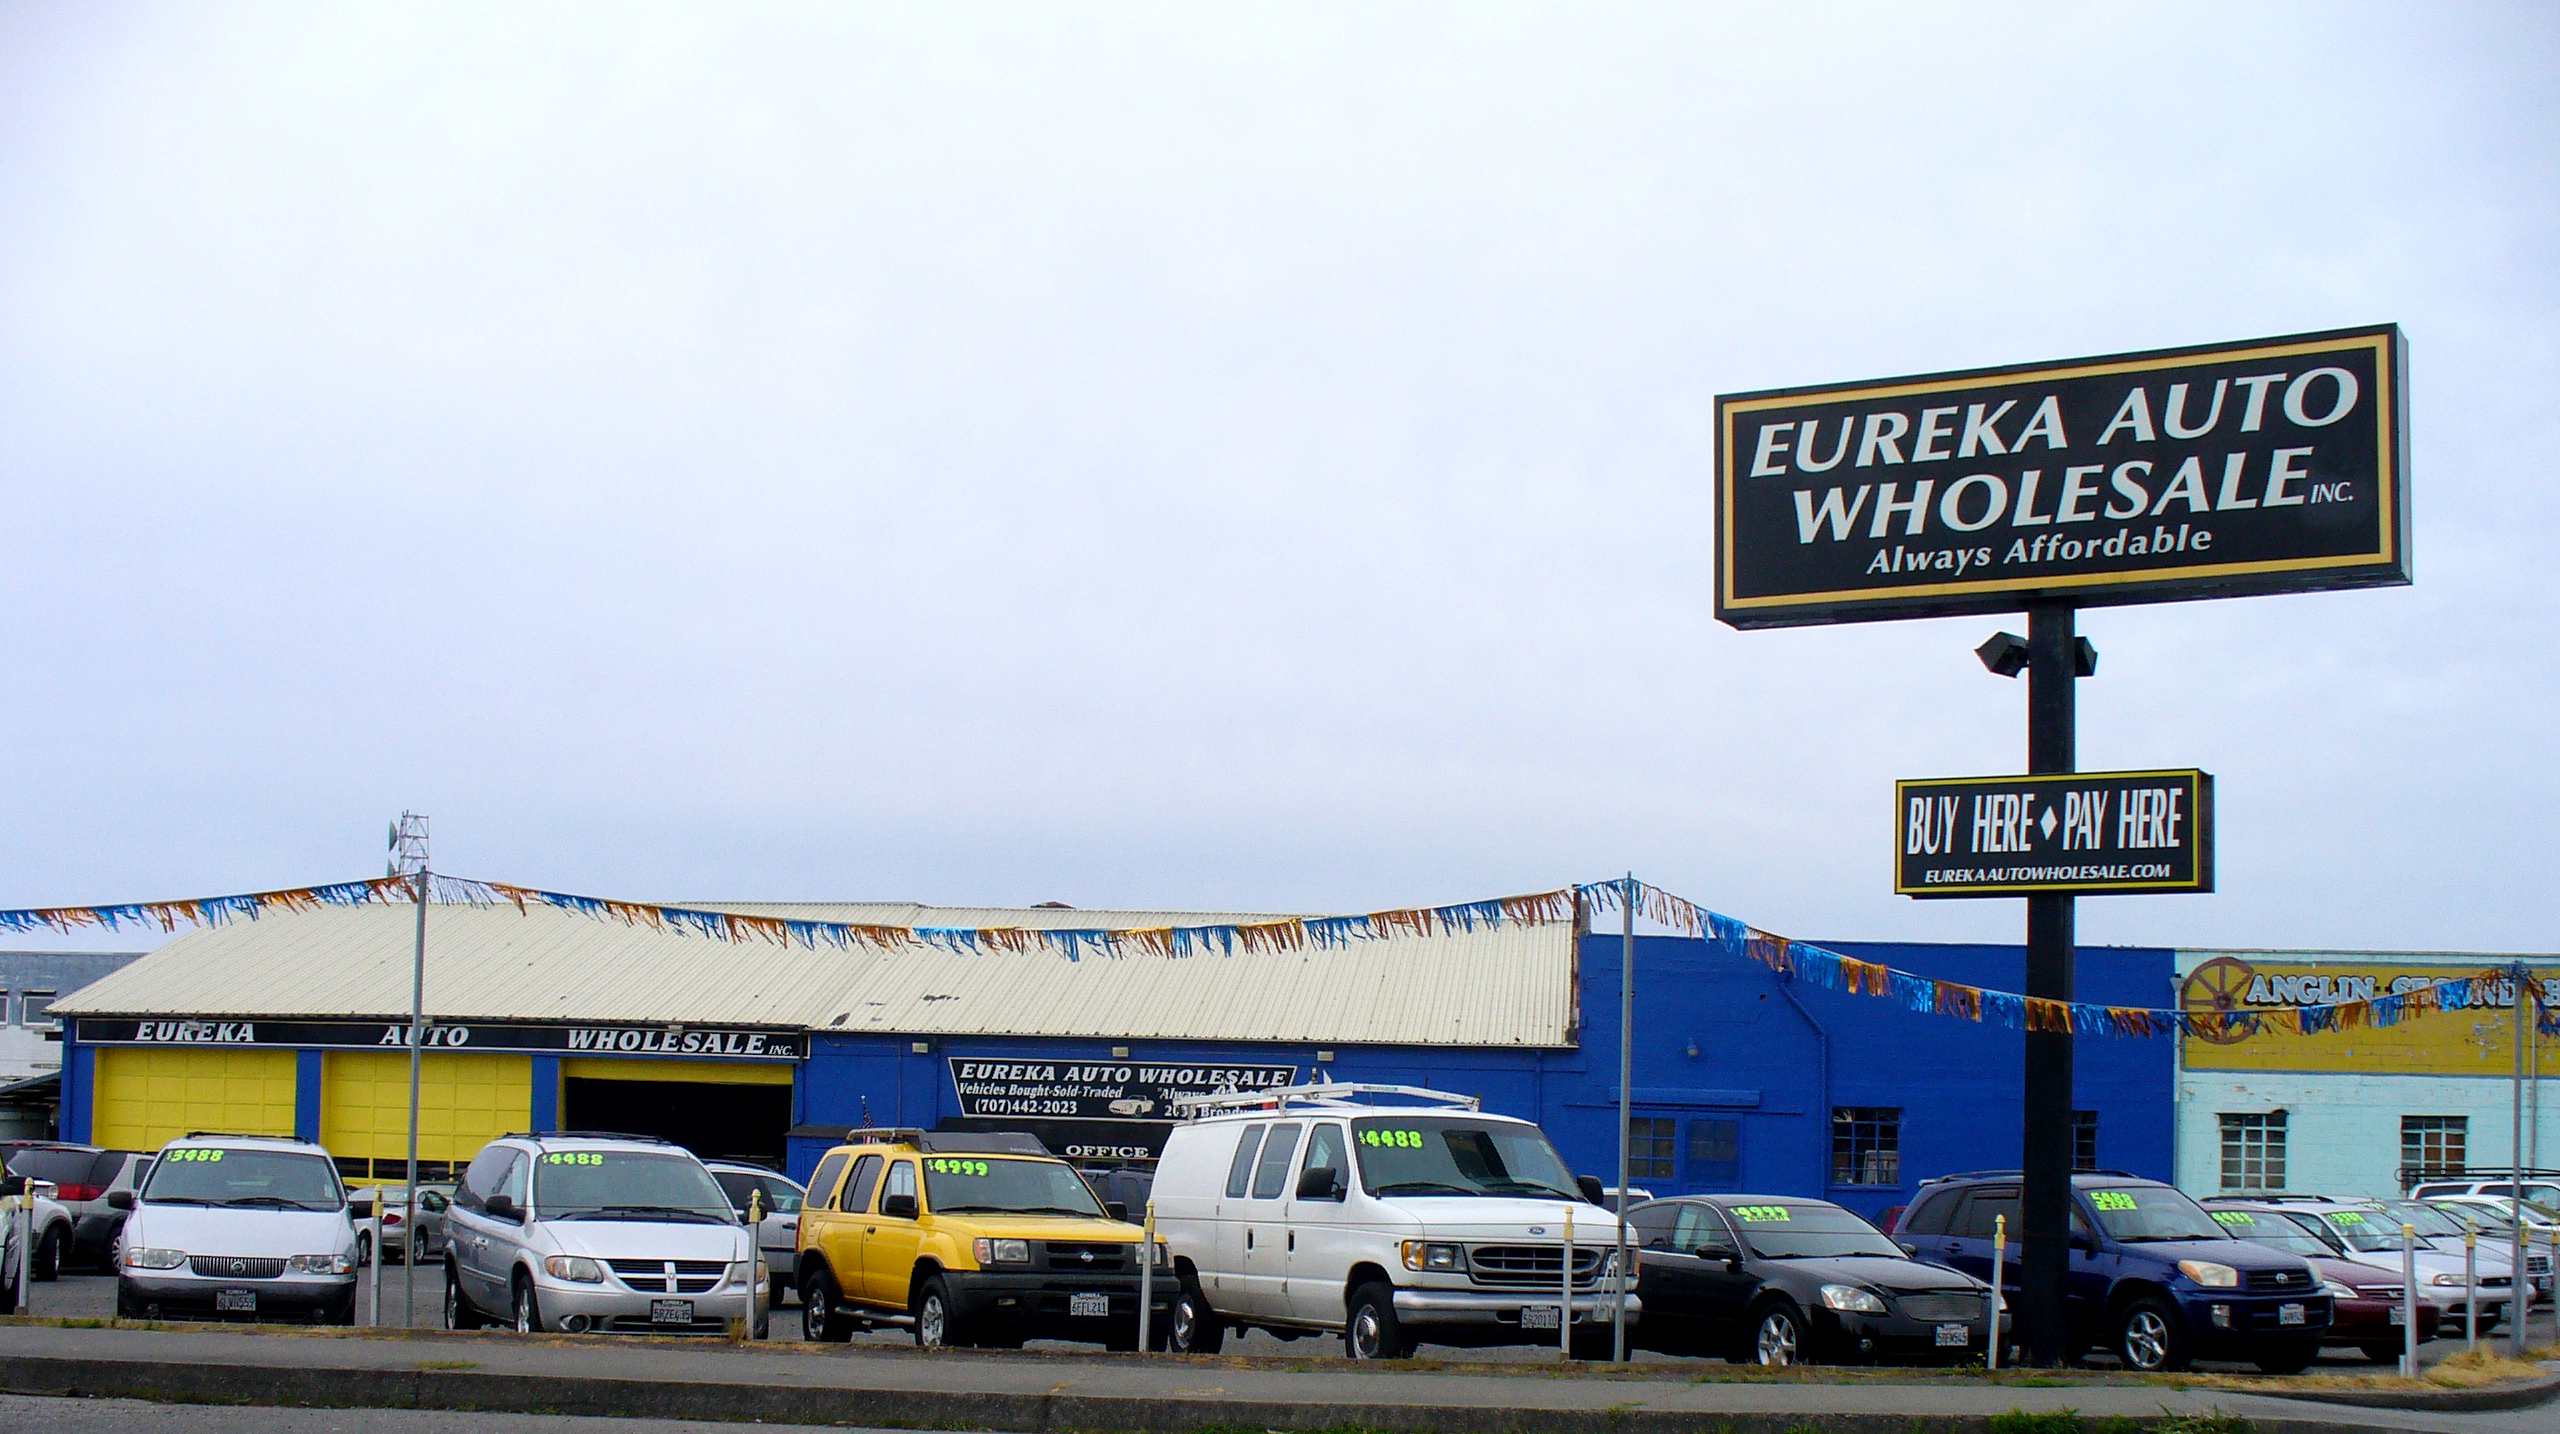 Eureka Auto Wholesale Main Site